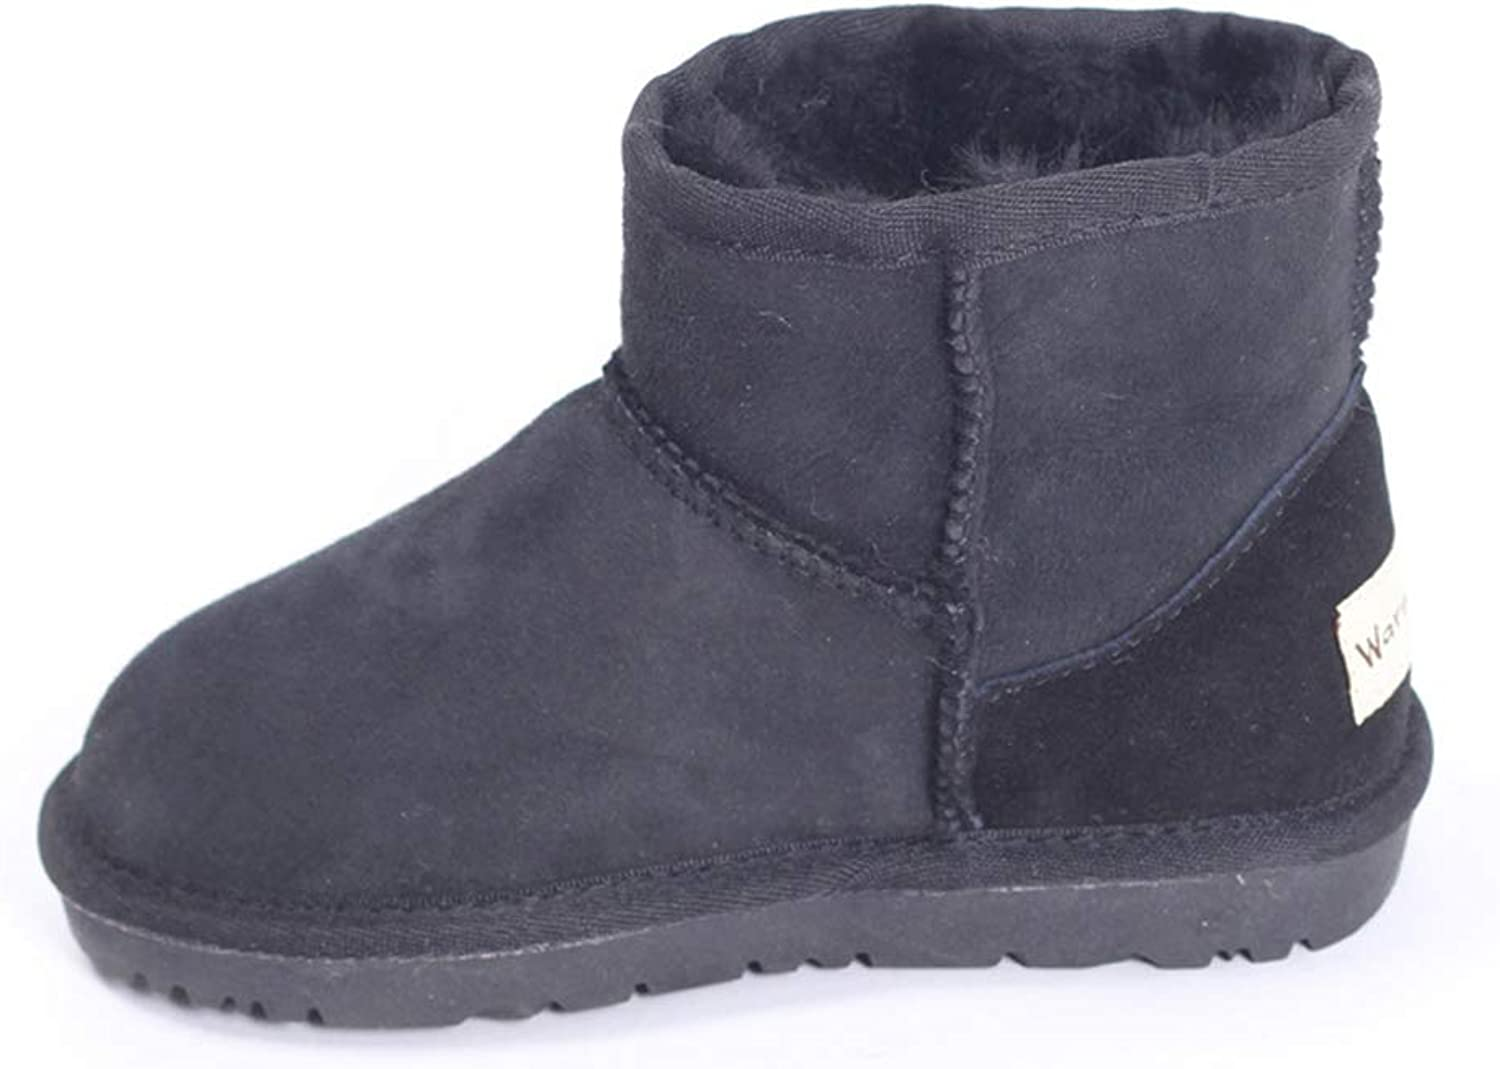 Coloing Boy's Girl's Classic Suede Leather Snow Boots Toddler Little Kid Big Kid